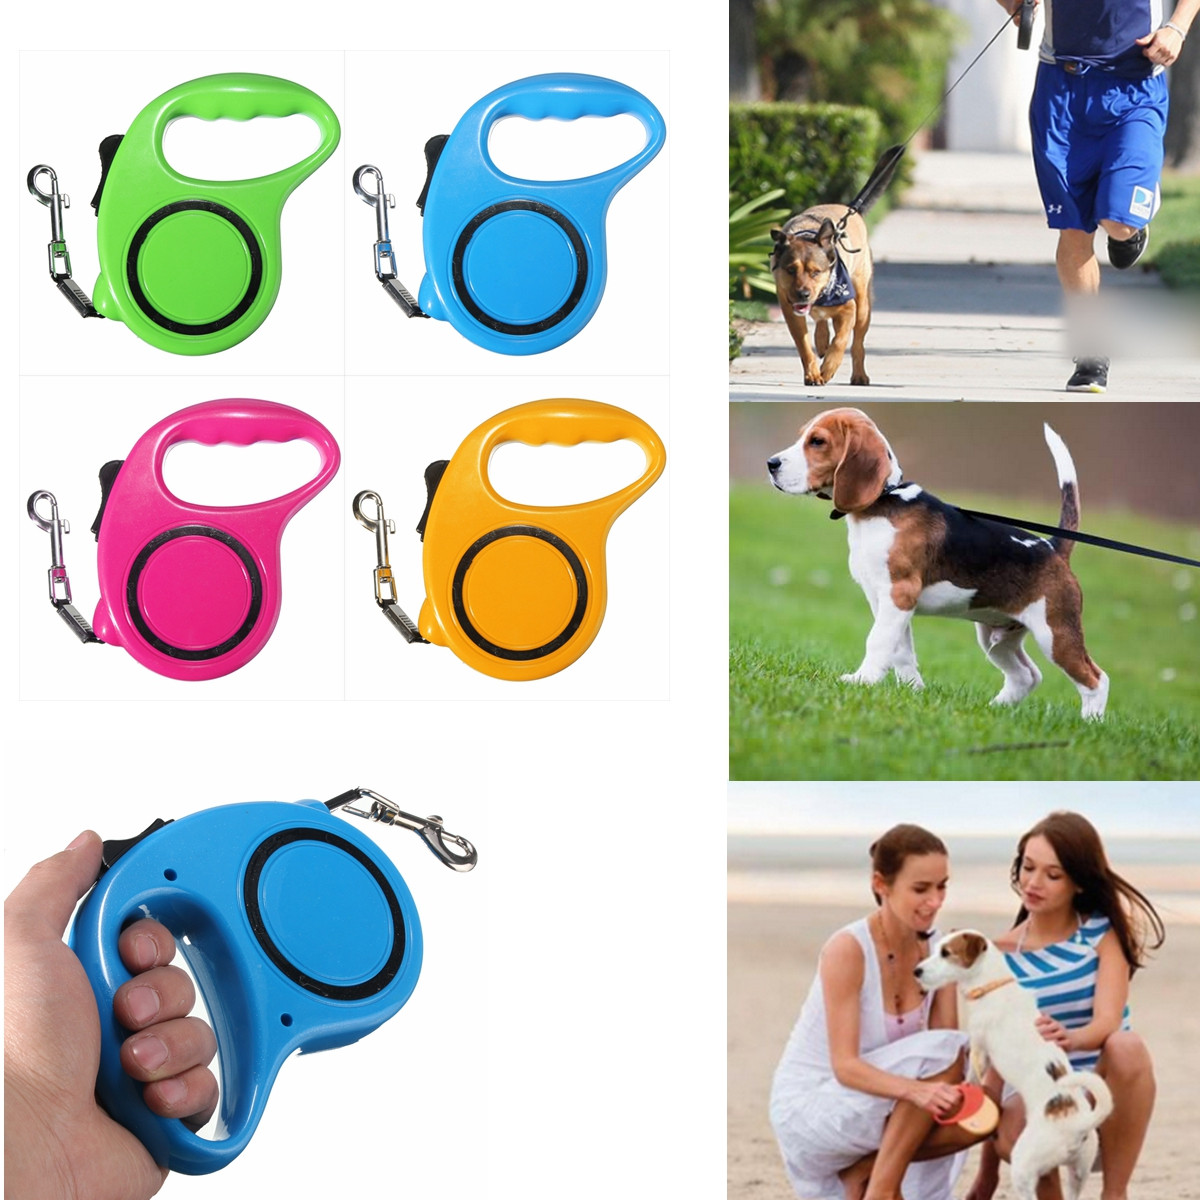 4 Colors 10FT/3M Retractable Leash Extendable Pet Dog Walking Training Leash Nylon Automatic Lead Gift For Friends